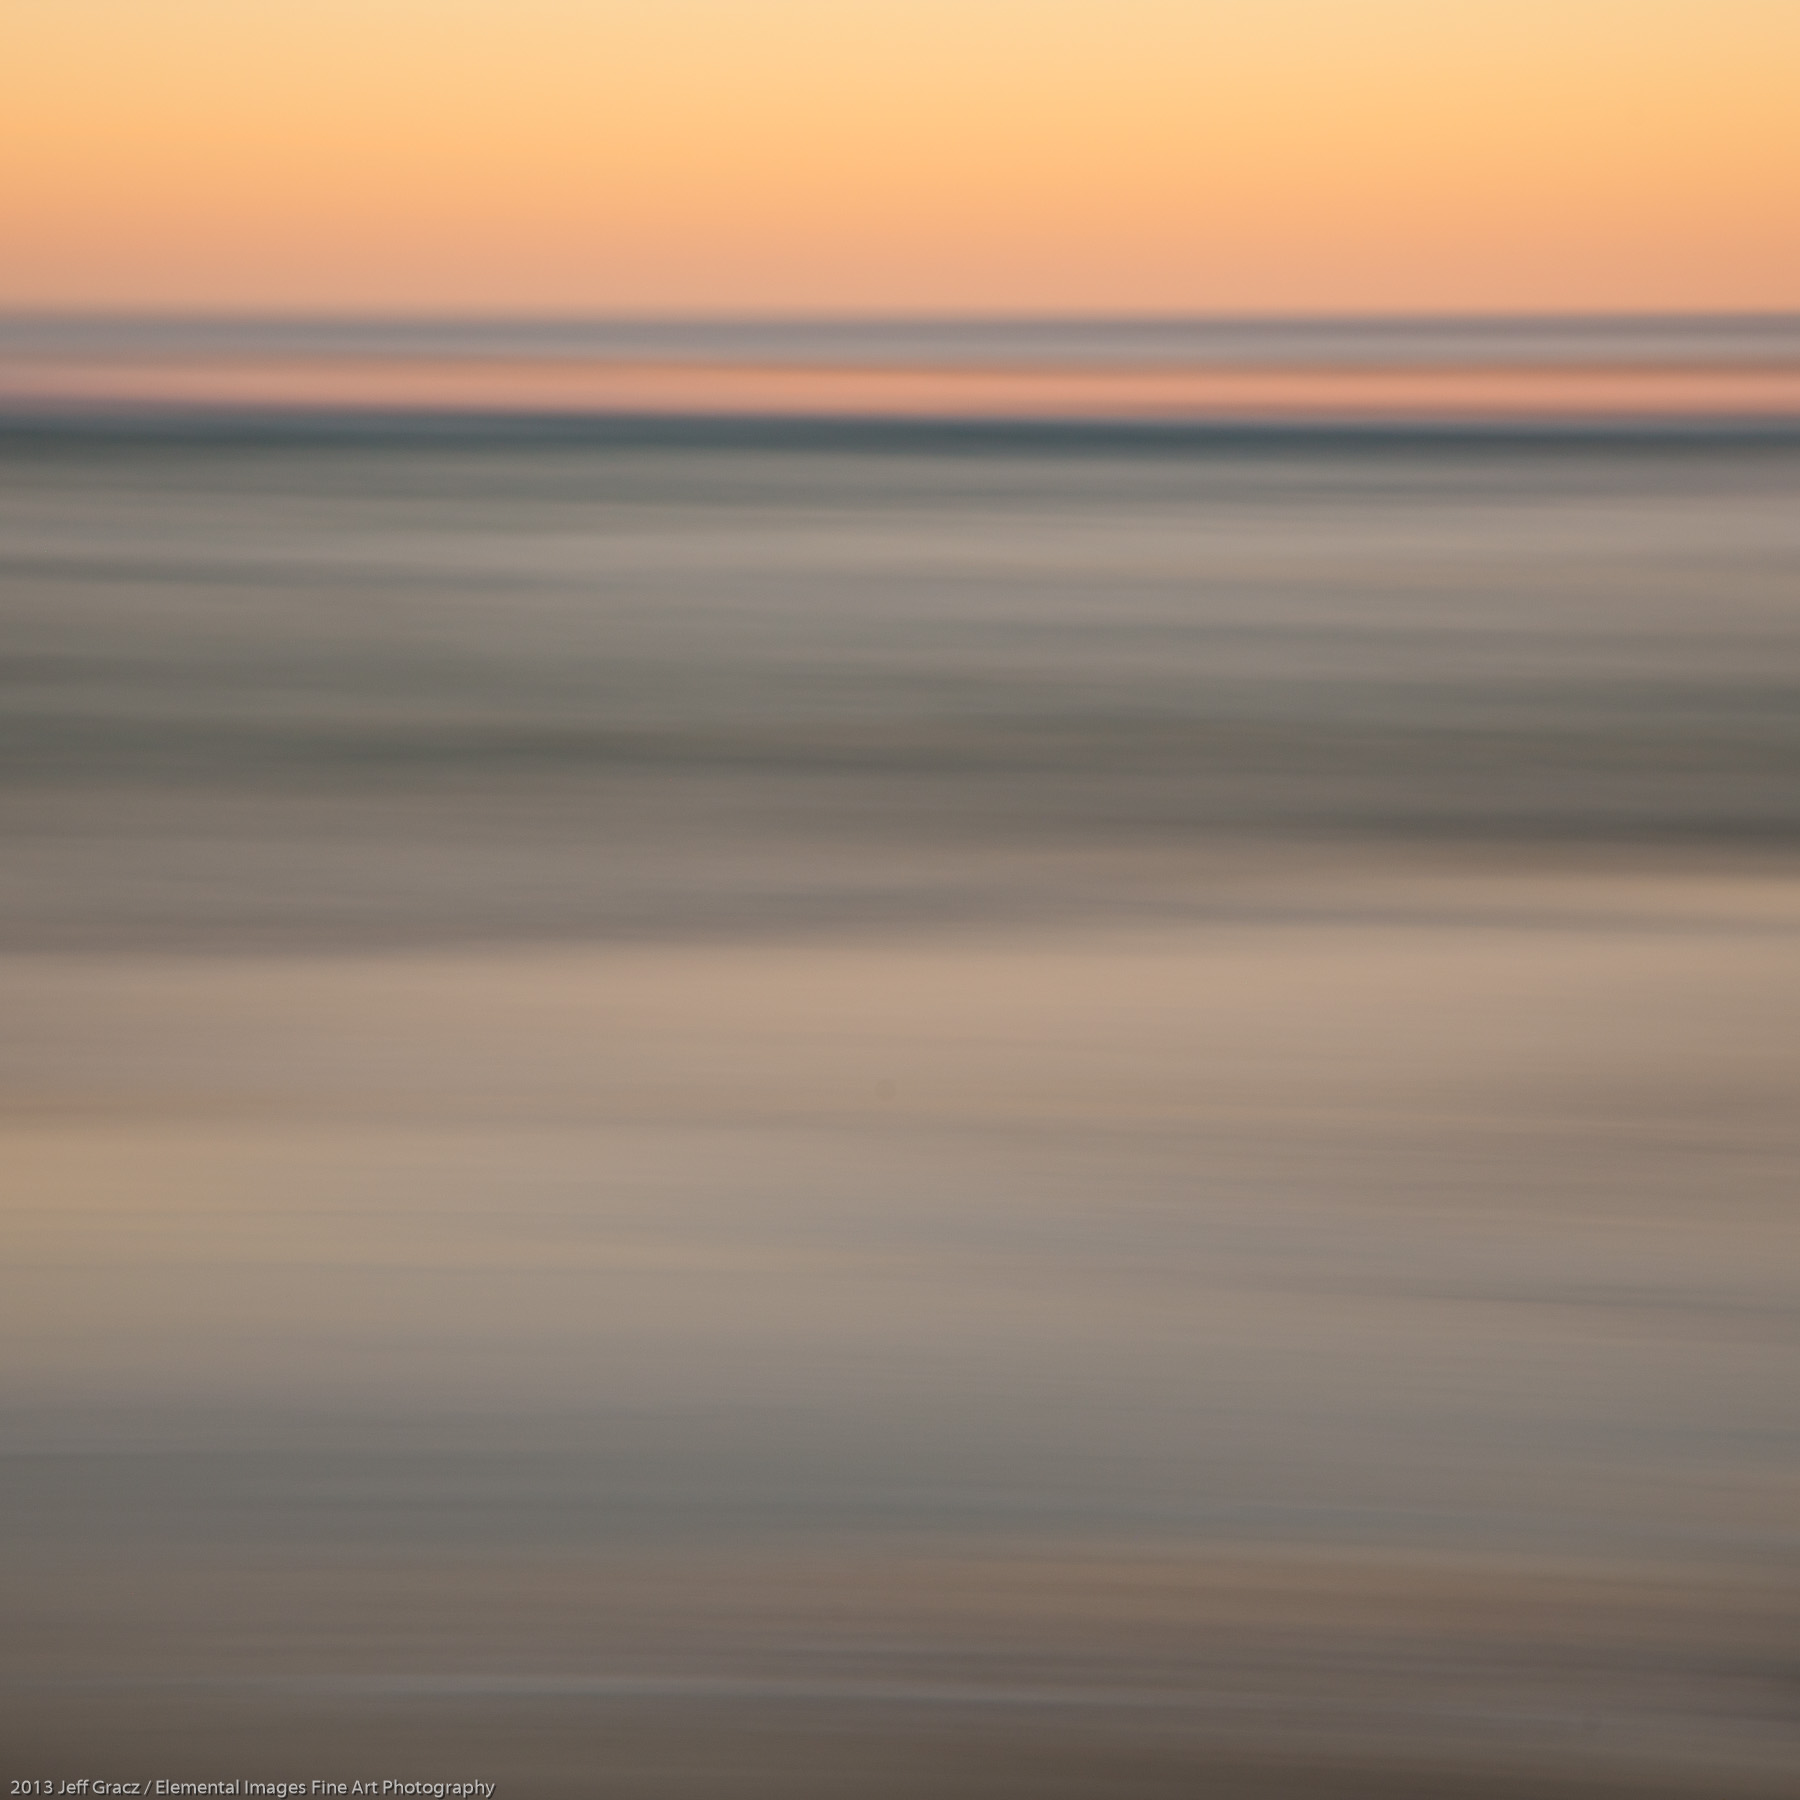 Sea and Sky XXVII   D River State Wayside   OR   USA - © 2013 Jeff Gracz / Elemental Images Fine Art Photography - All Rights Reserved Worldwide